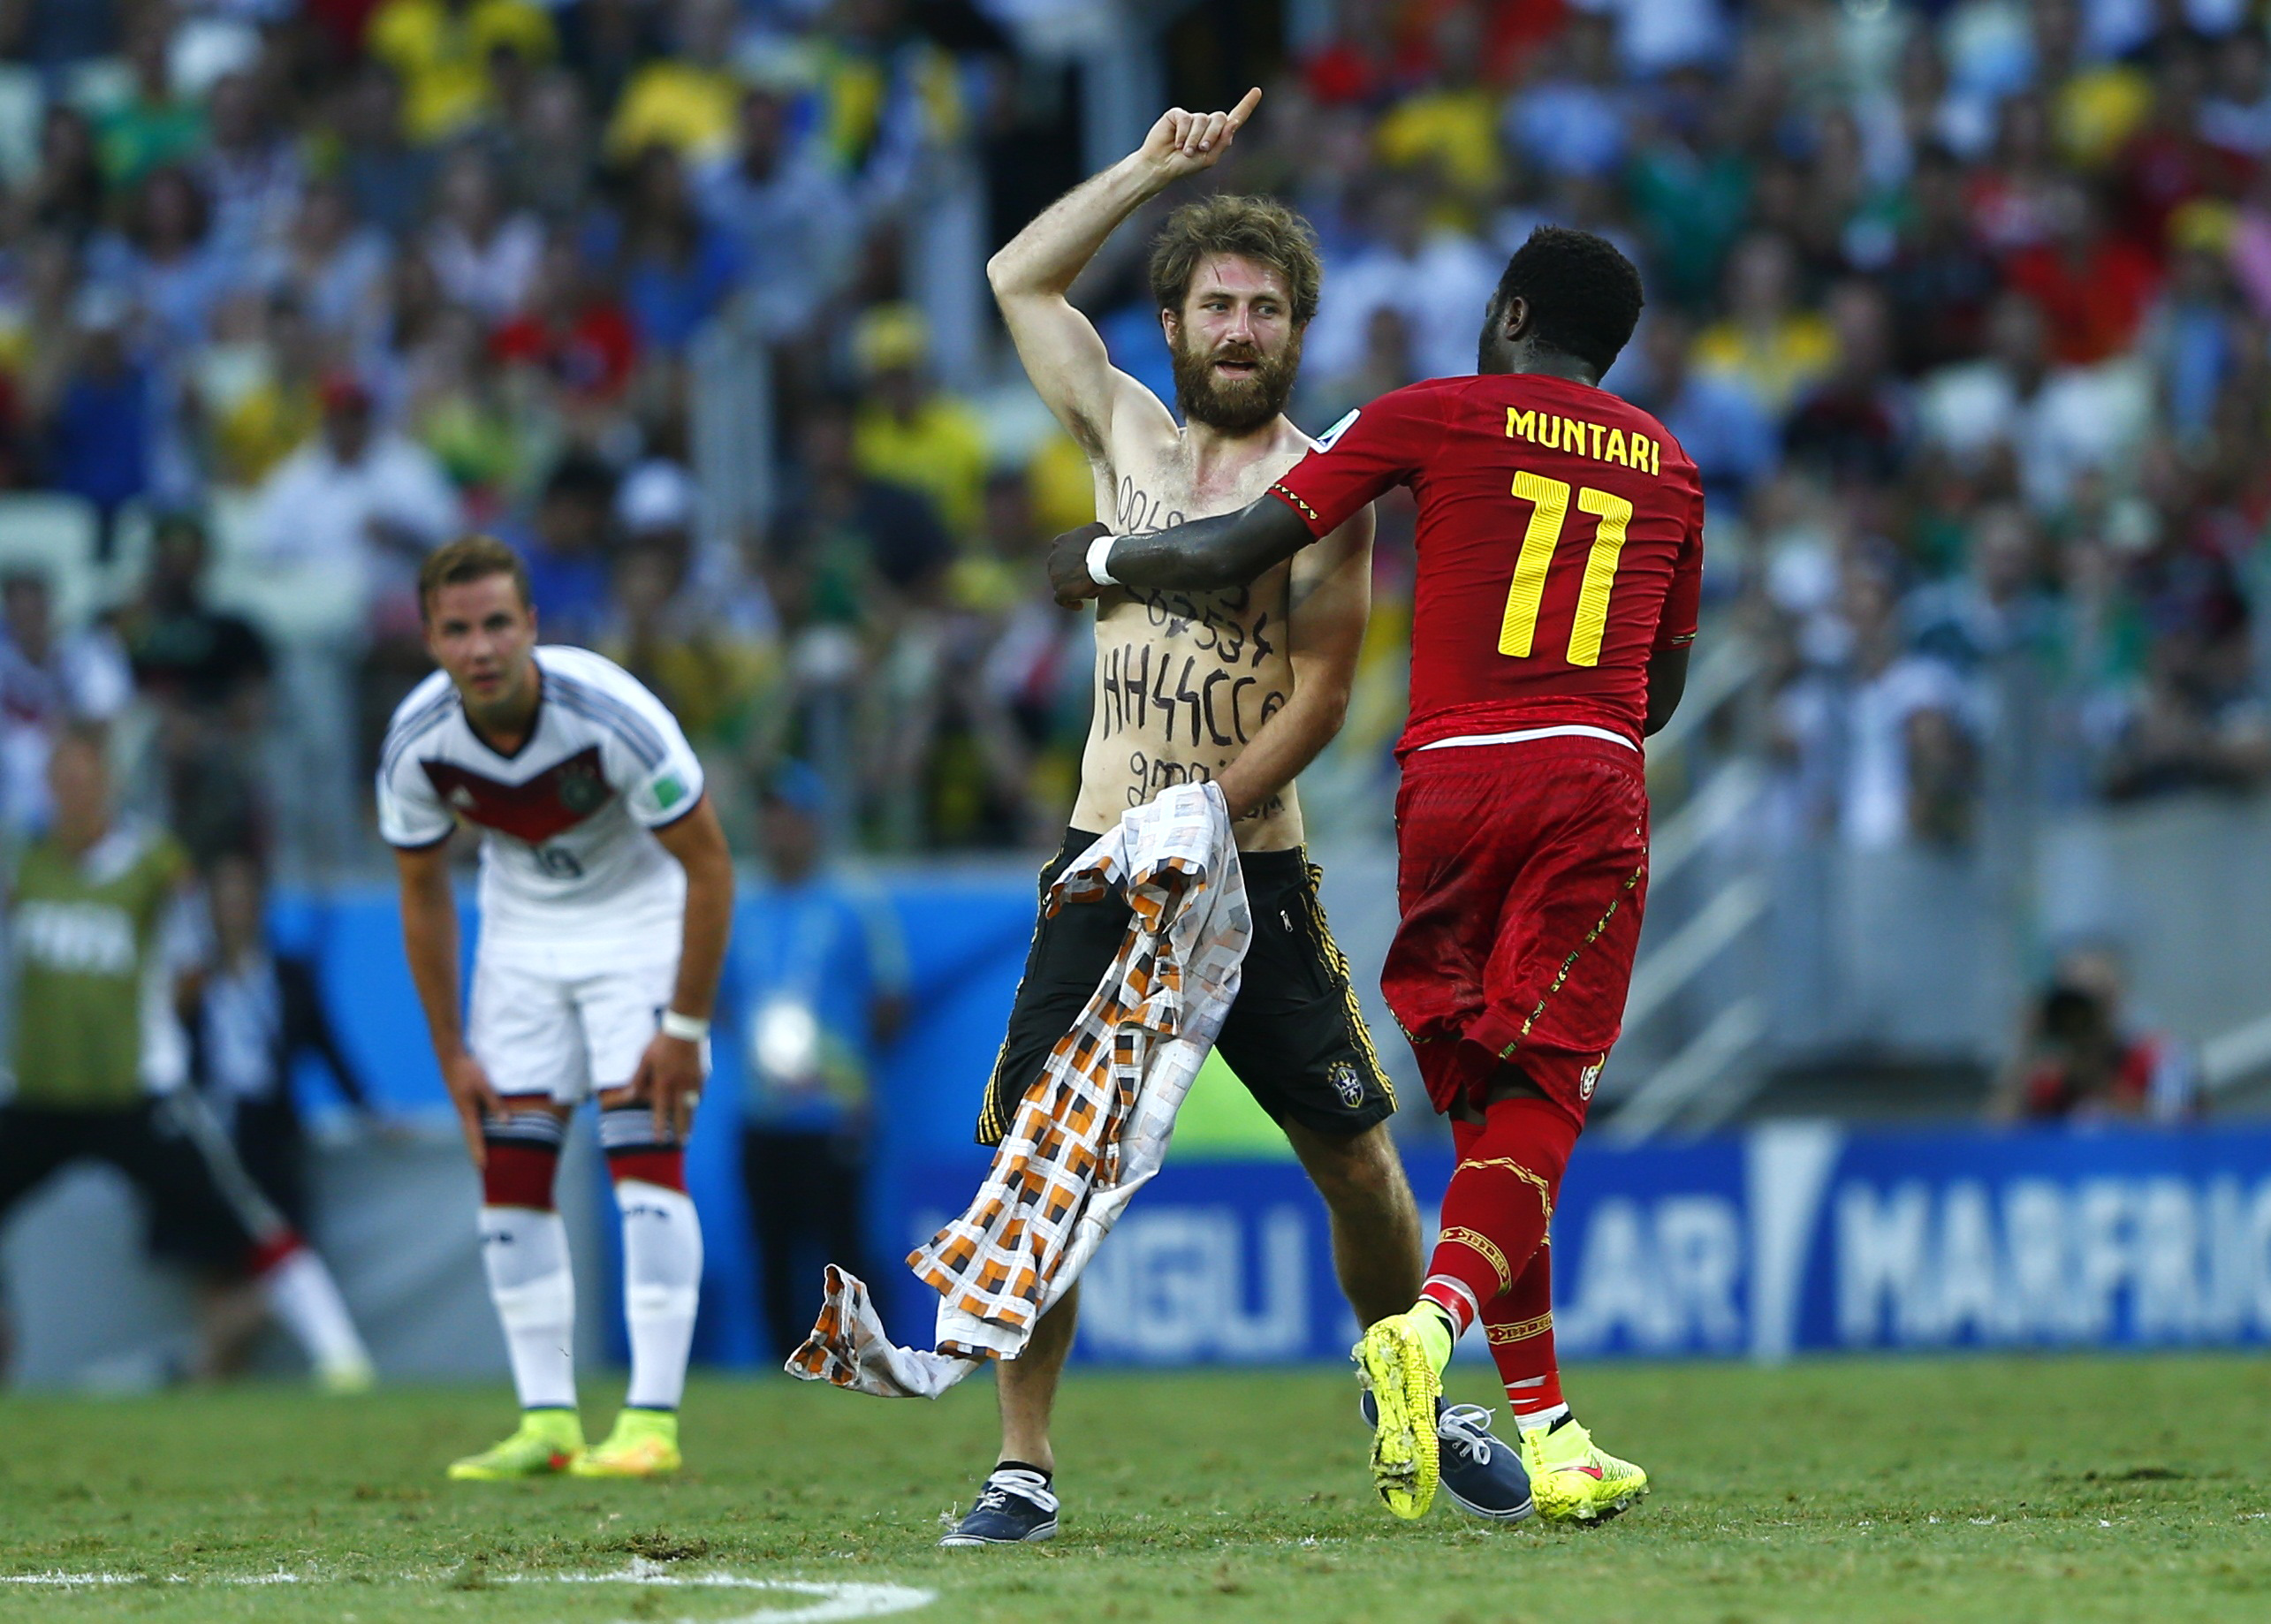 Ghana's Sulley Muntari helps a spectator off the field during the 2014 World Cup soccer match between Germany and Ghana on June 21, 2014.